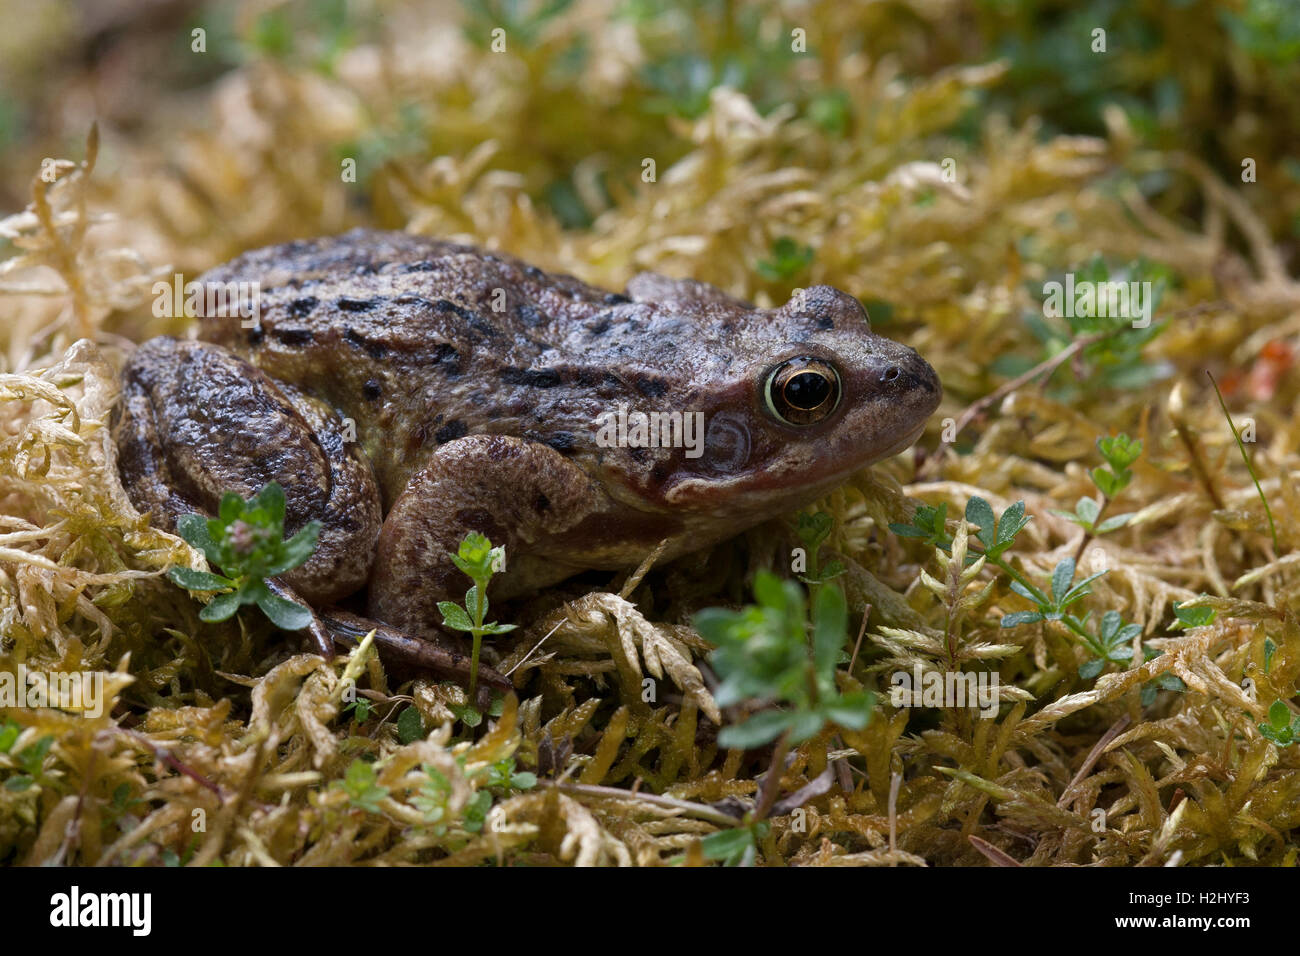 Common Frog, Rana temporaria,  Portrait of single adult resting on mossy bank. Linn of Dee, Scotland, UK. - Stock Image